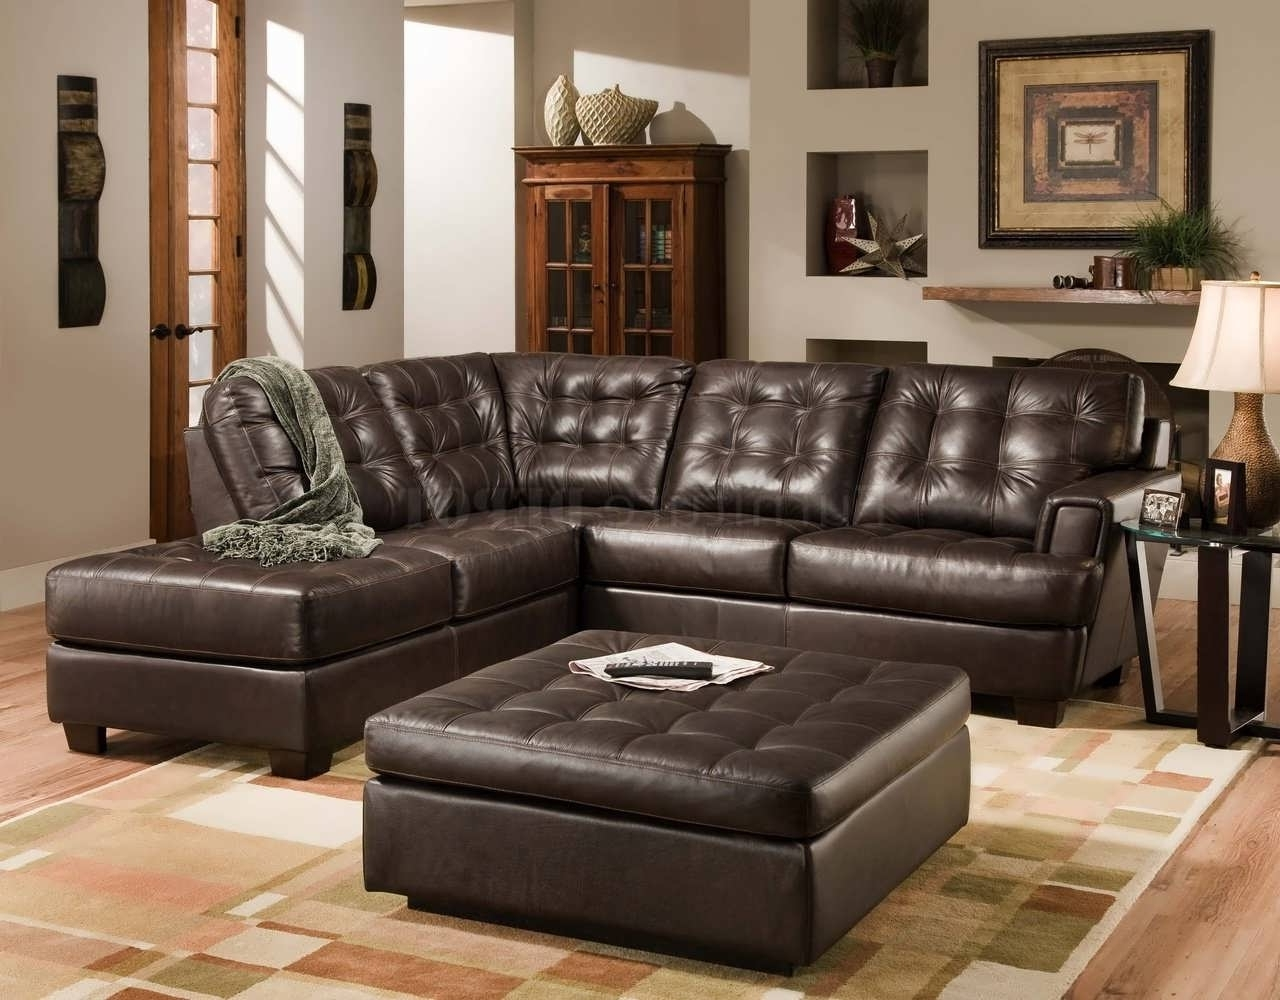 Brown Leather Sectionals With Chaise For Preferred Sofa : Chaise Sofa Leather Suites Leather Sectional Sofa Sectional (View 3 of 15)